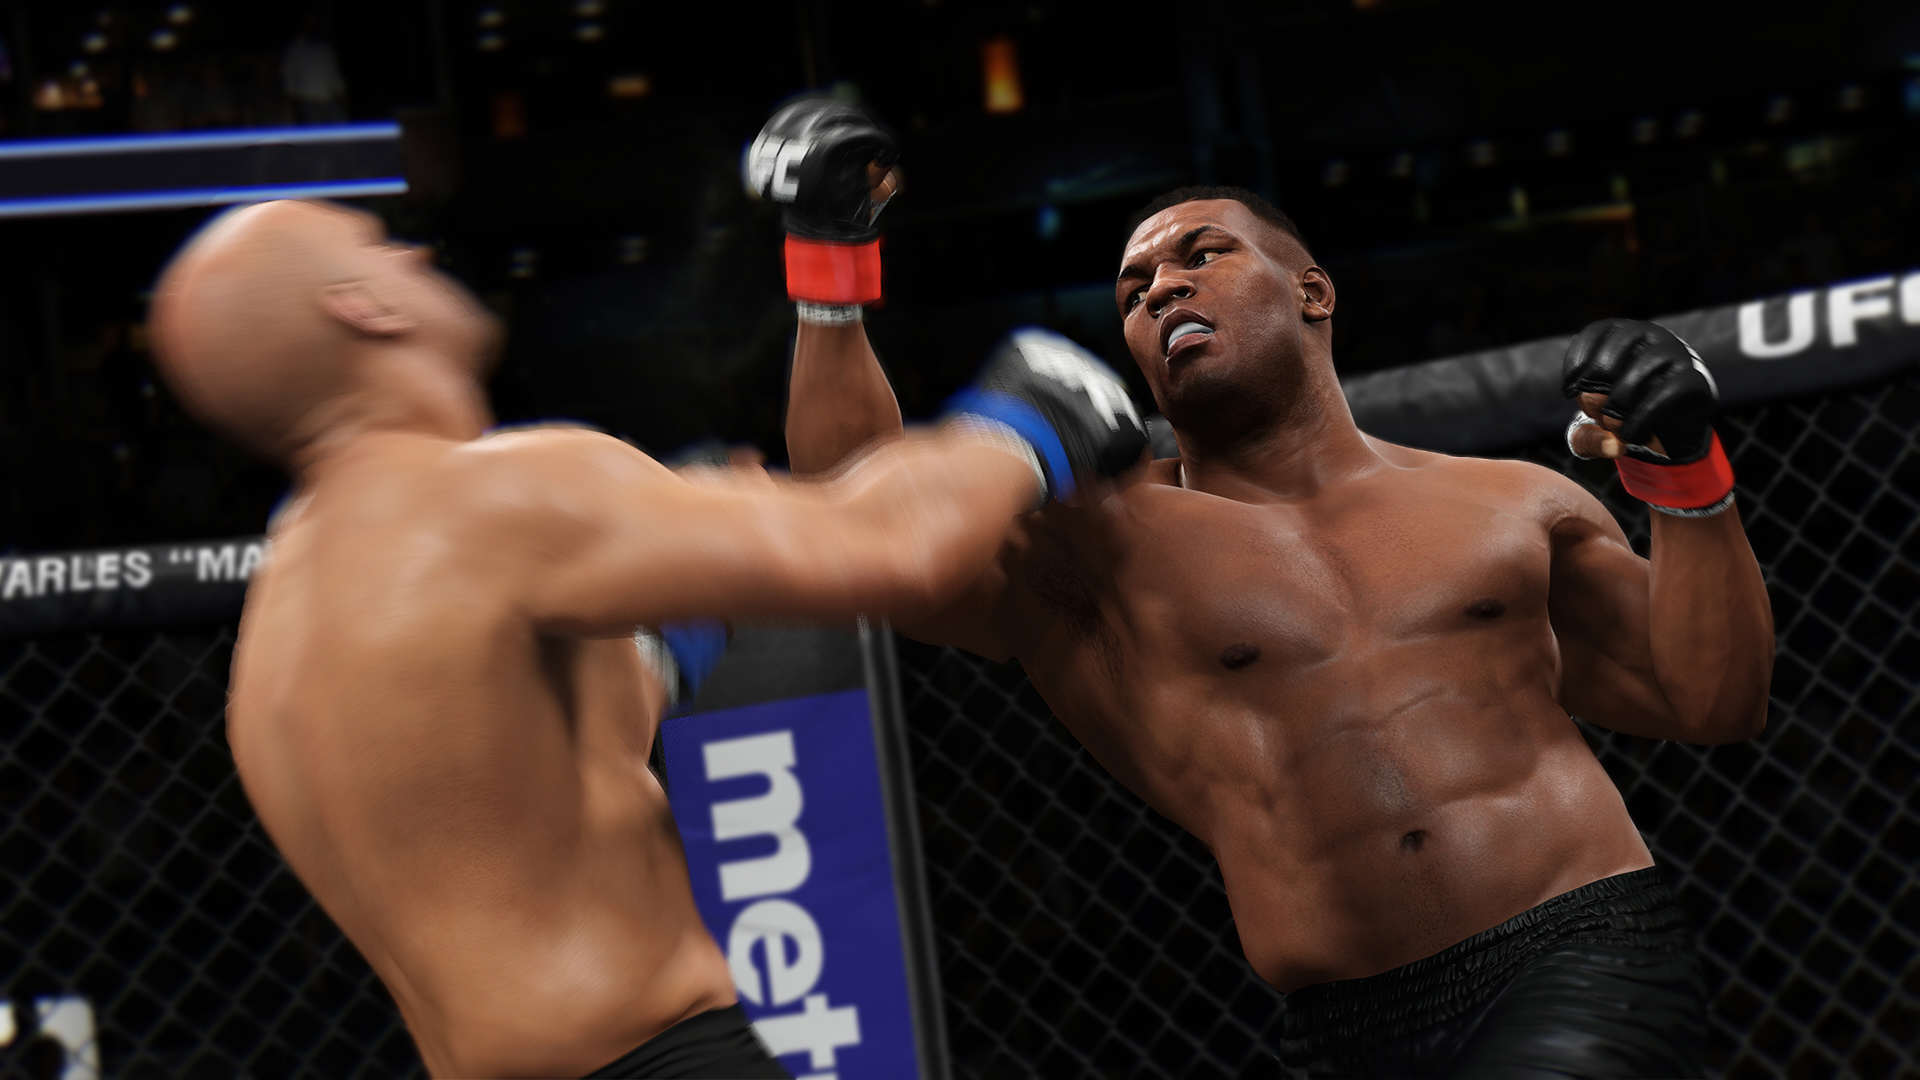 UFC 2 Delivers Great Punches But Struggles With The Knockout Blow clobber